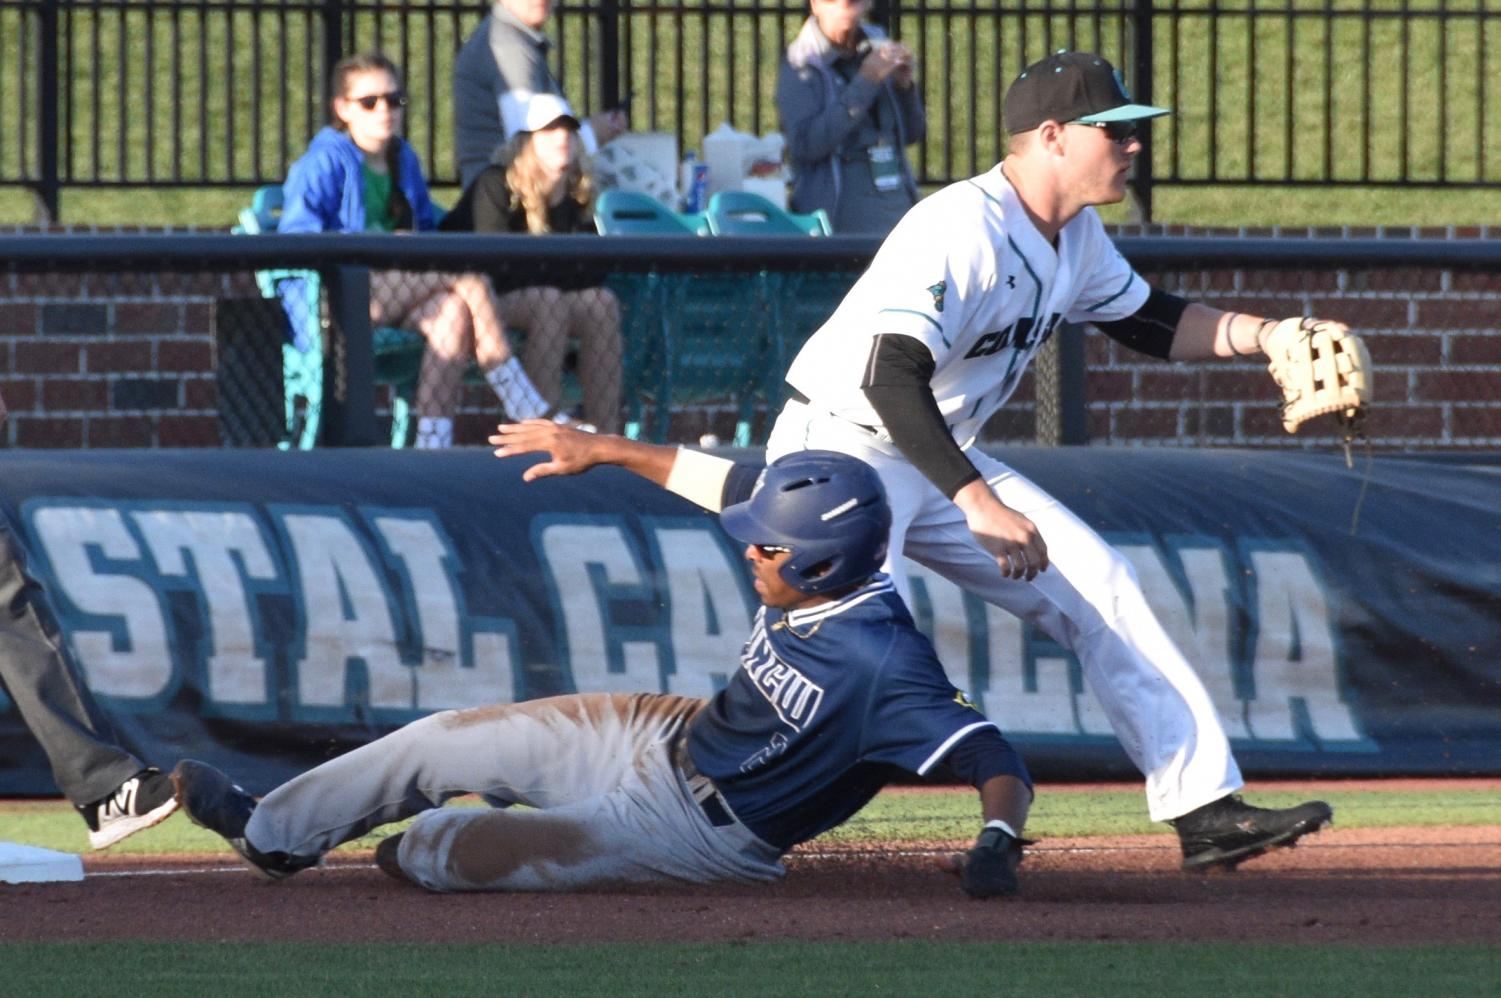 Greg Jones (2) slides into third base during UNCW's matchup against Coastal Carolina at Springs Brooks Stadium on March 27, 2019.